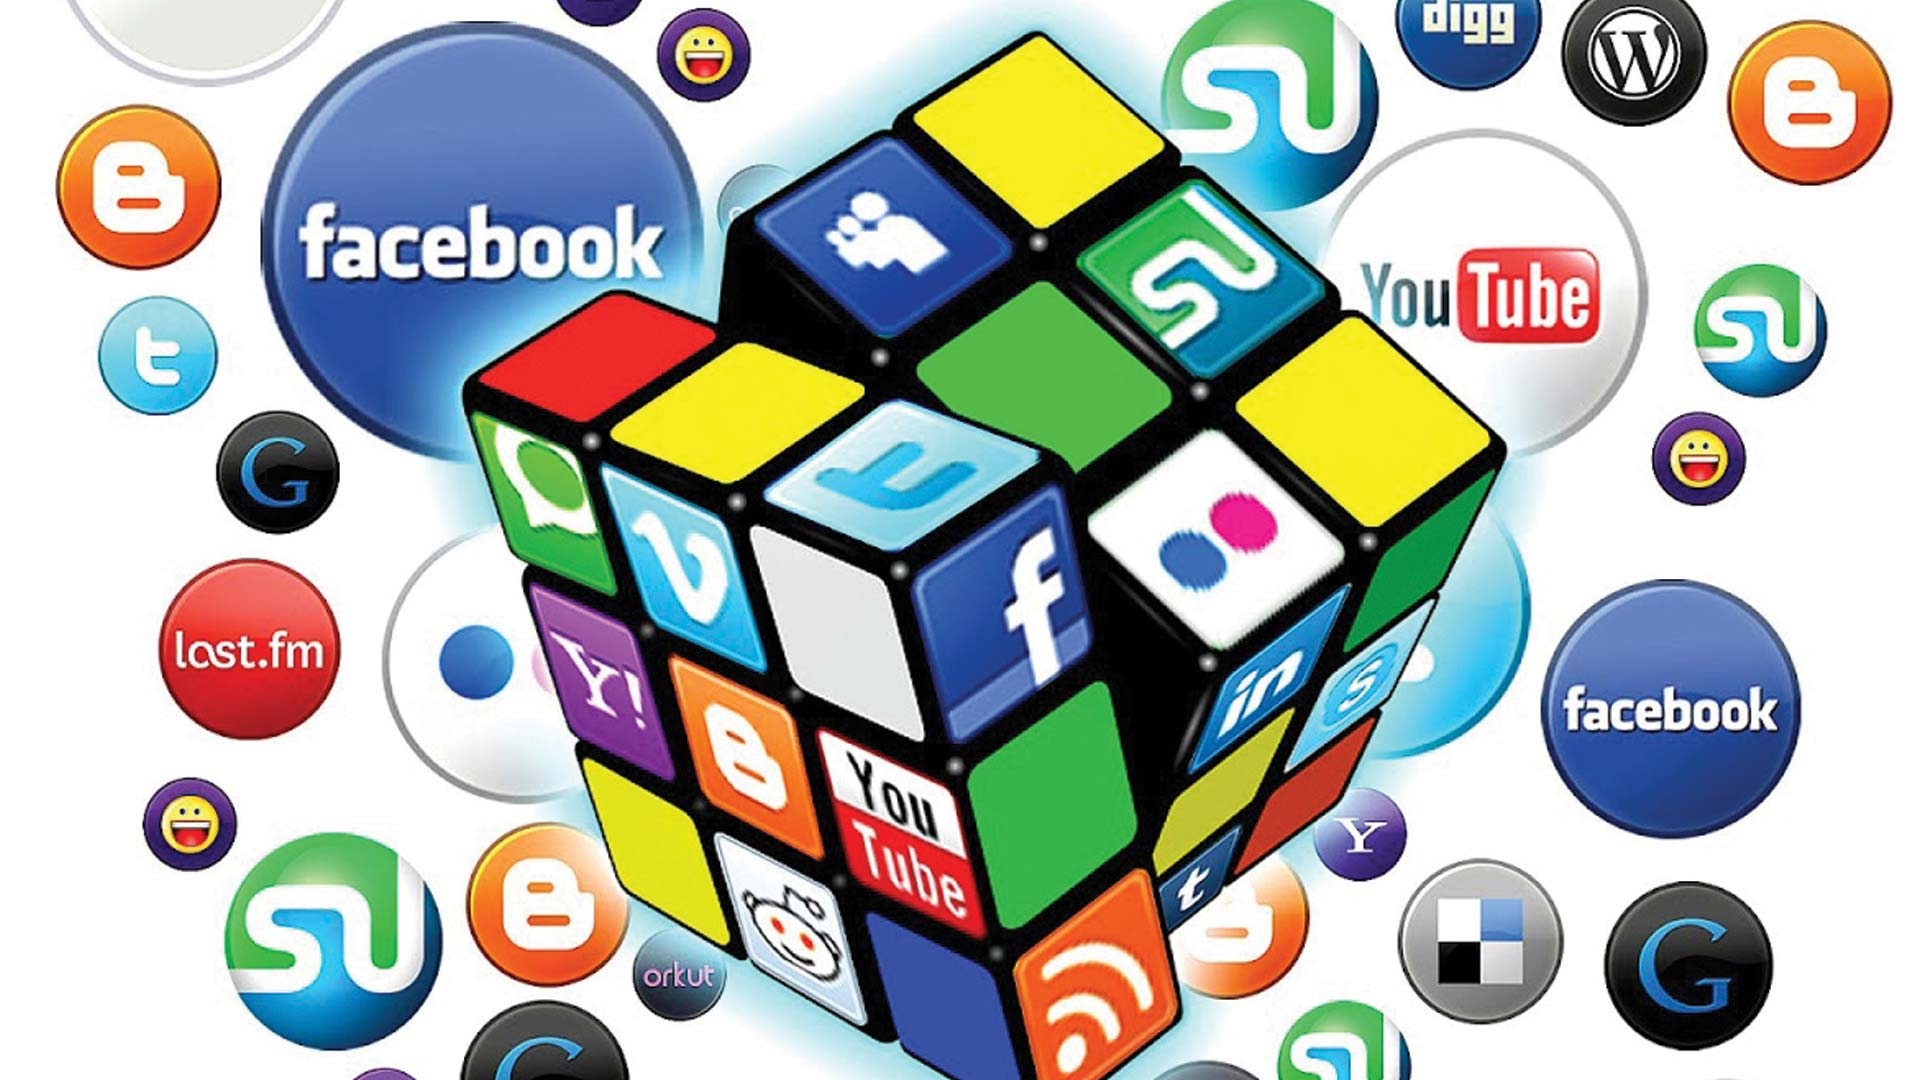 Rubiks cube with social media icons surrounding it